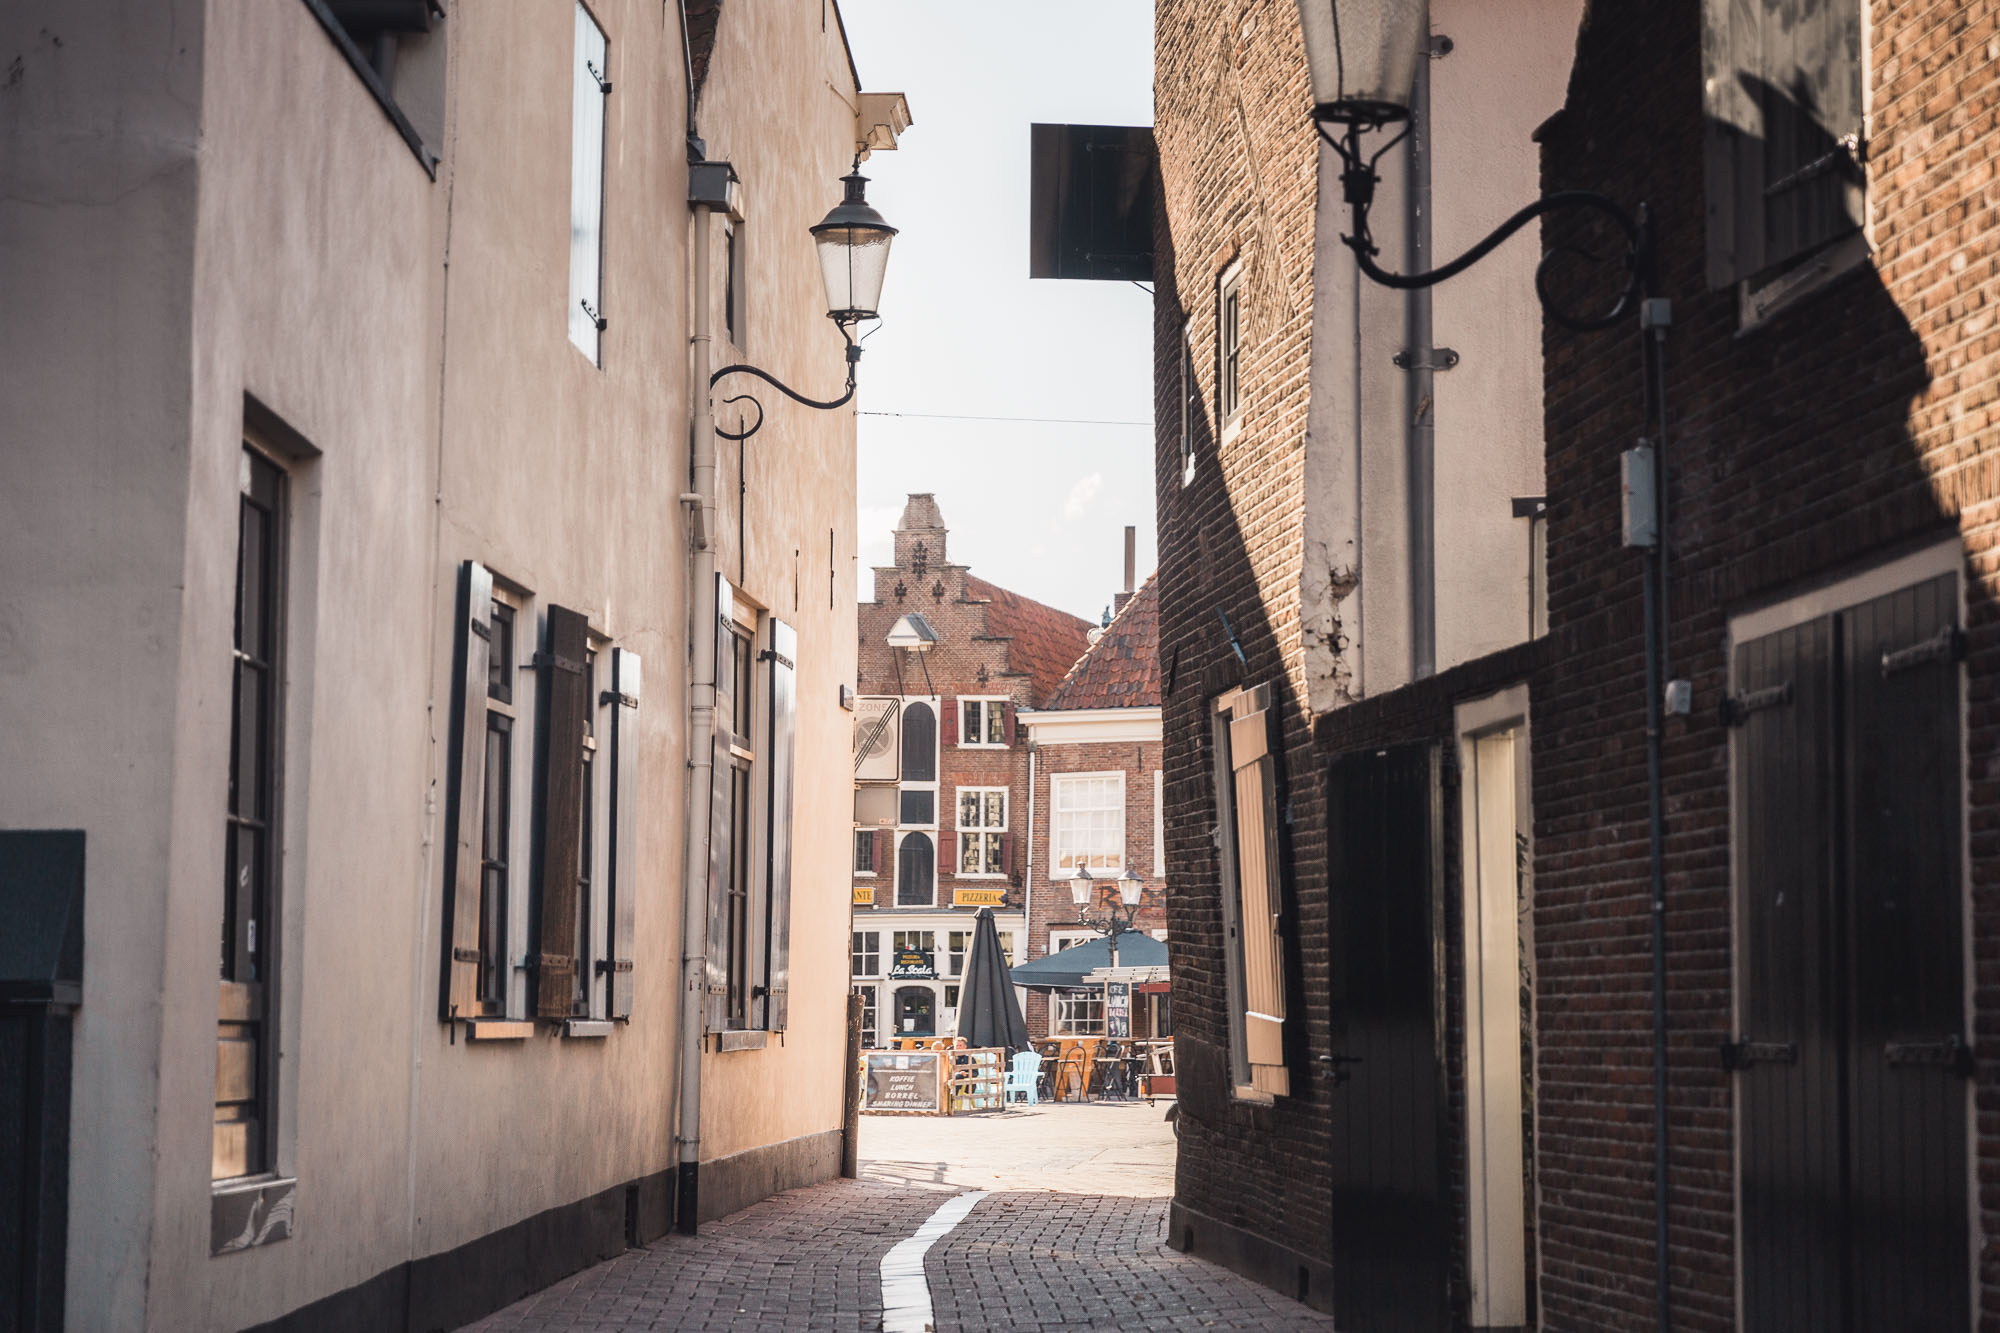 Old cobblestone streets in Amersfoort, Netherlands